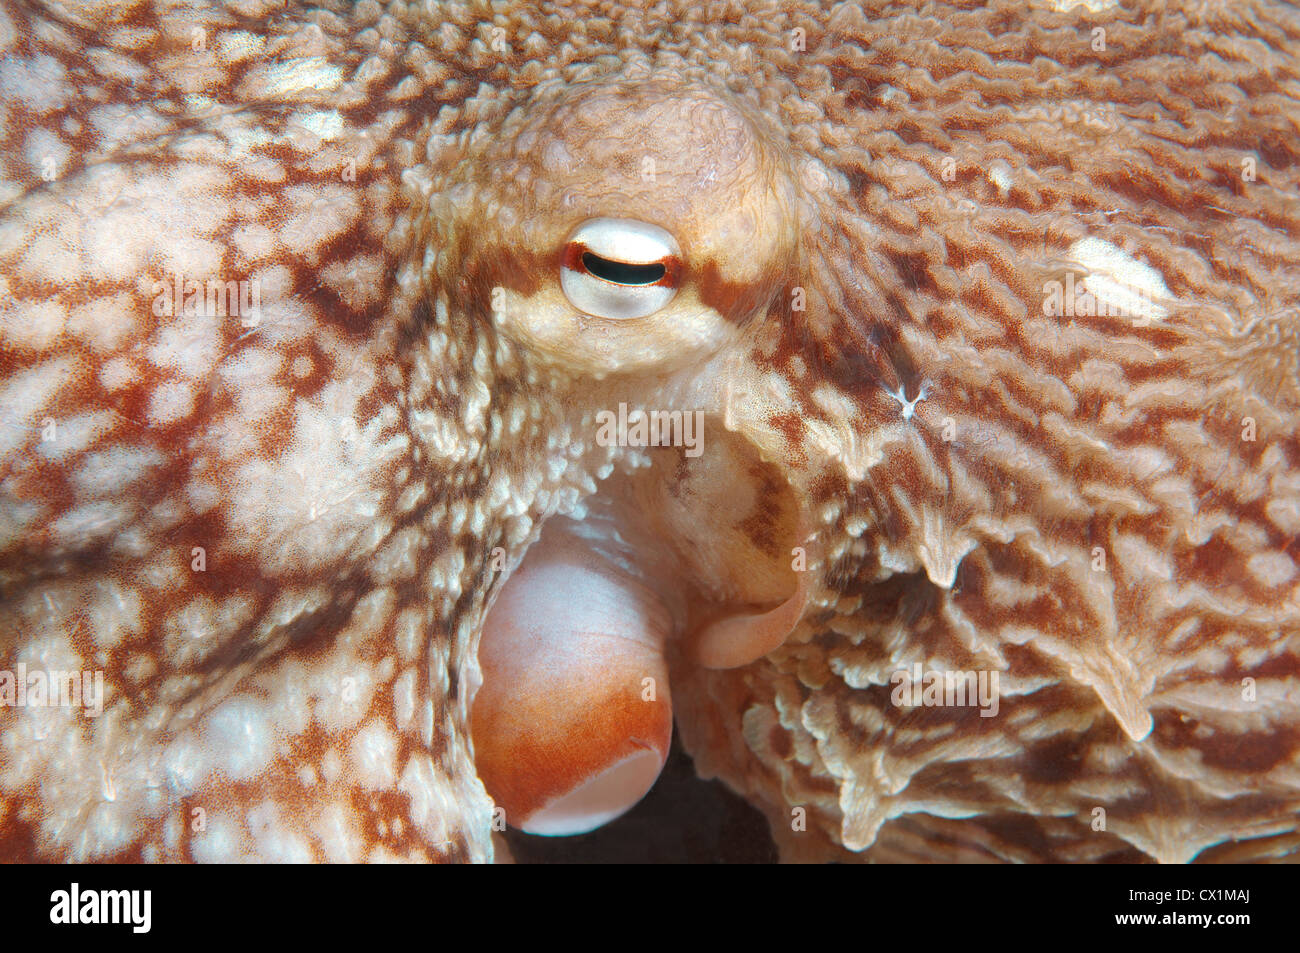 Giant Pacific octopus or North Pacific giant octopus, (Enteroctopus dofleini). Japan sea, Far East, Primorsky Krai, - Stock Image